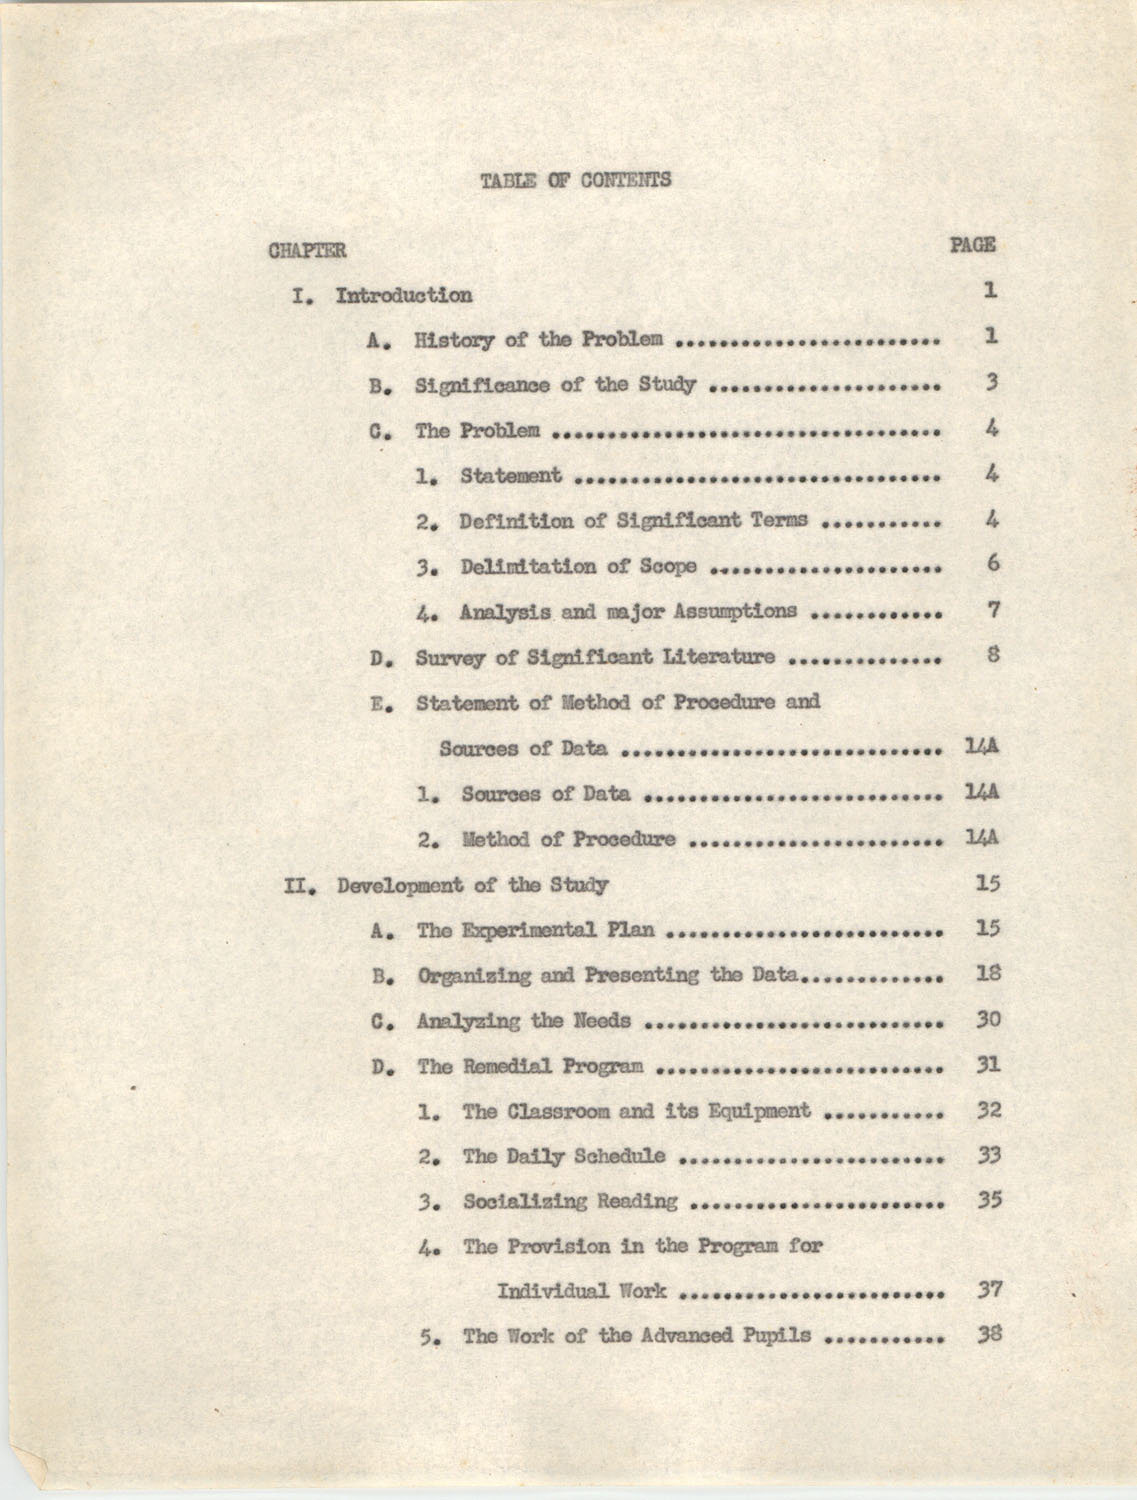 An Experiment in Individualizing Instruction in Reading in a Sixth Grade Class, 1946, Table of Contents